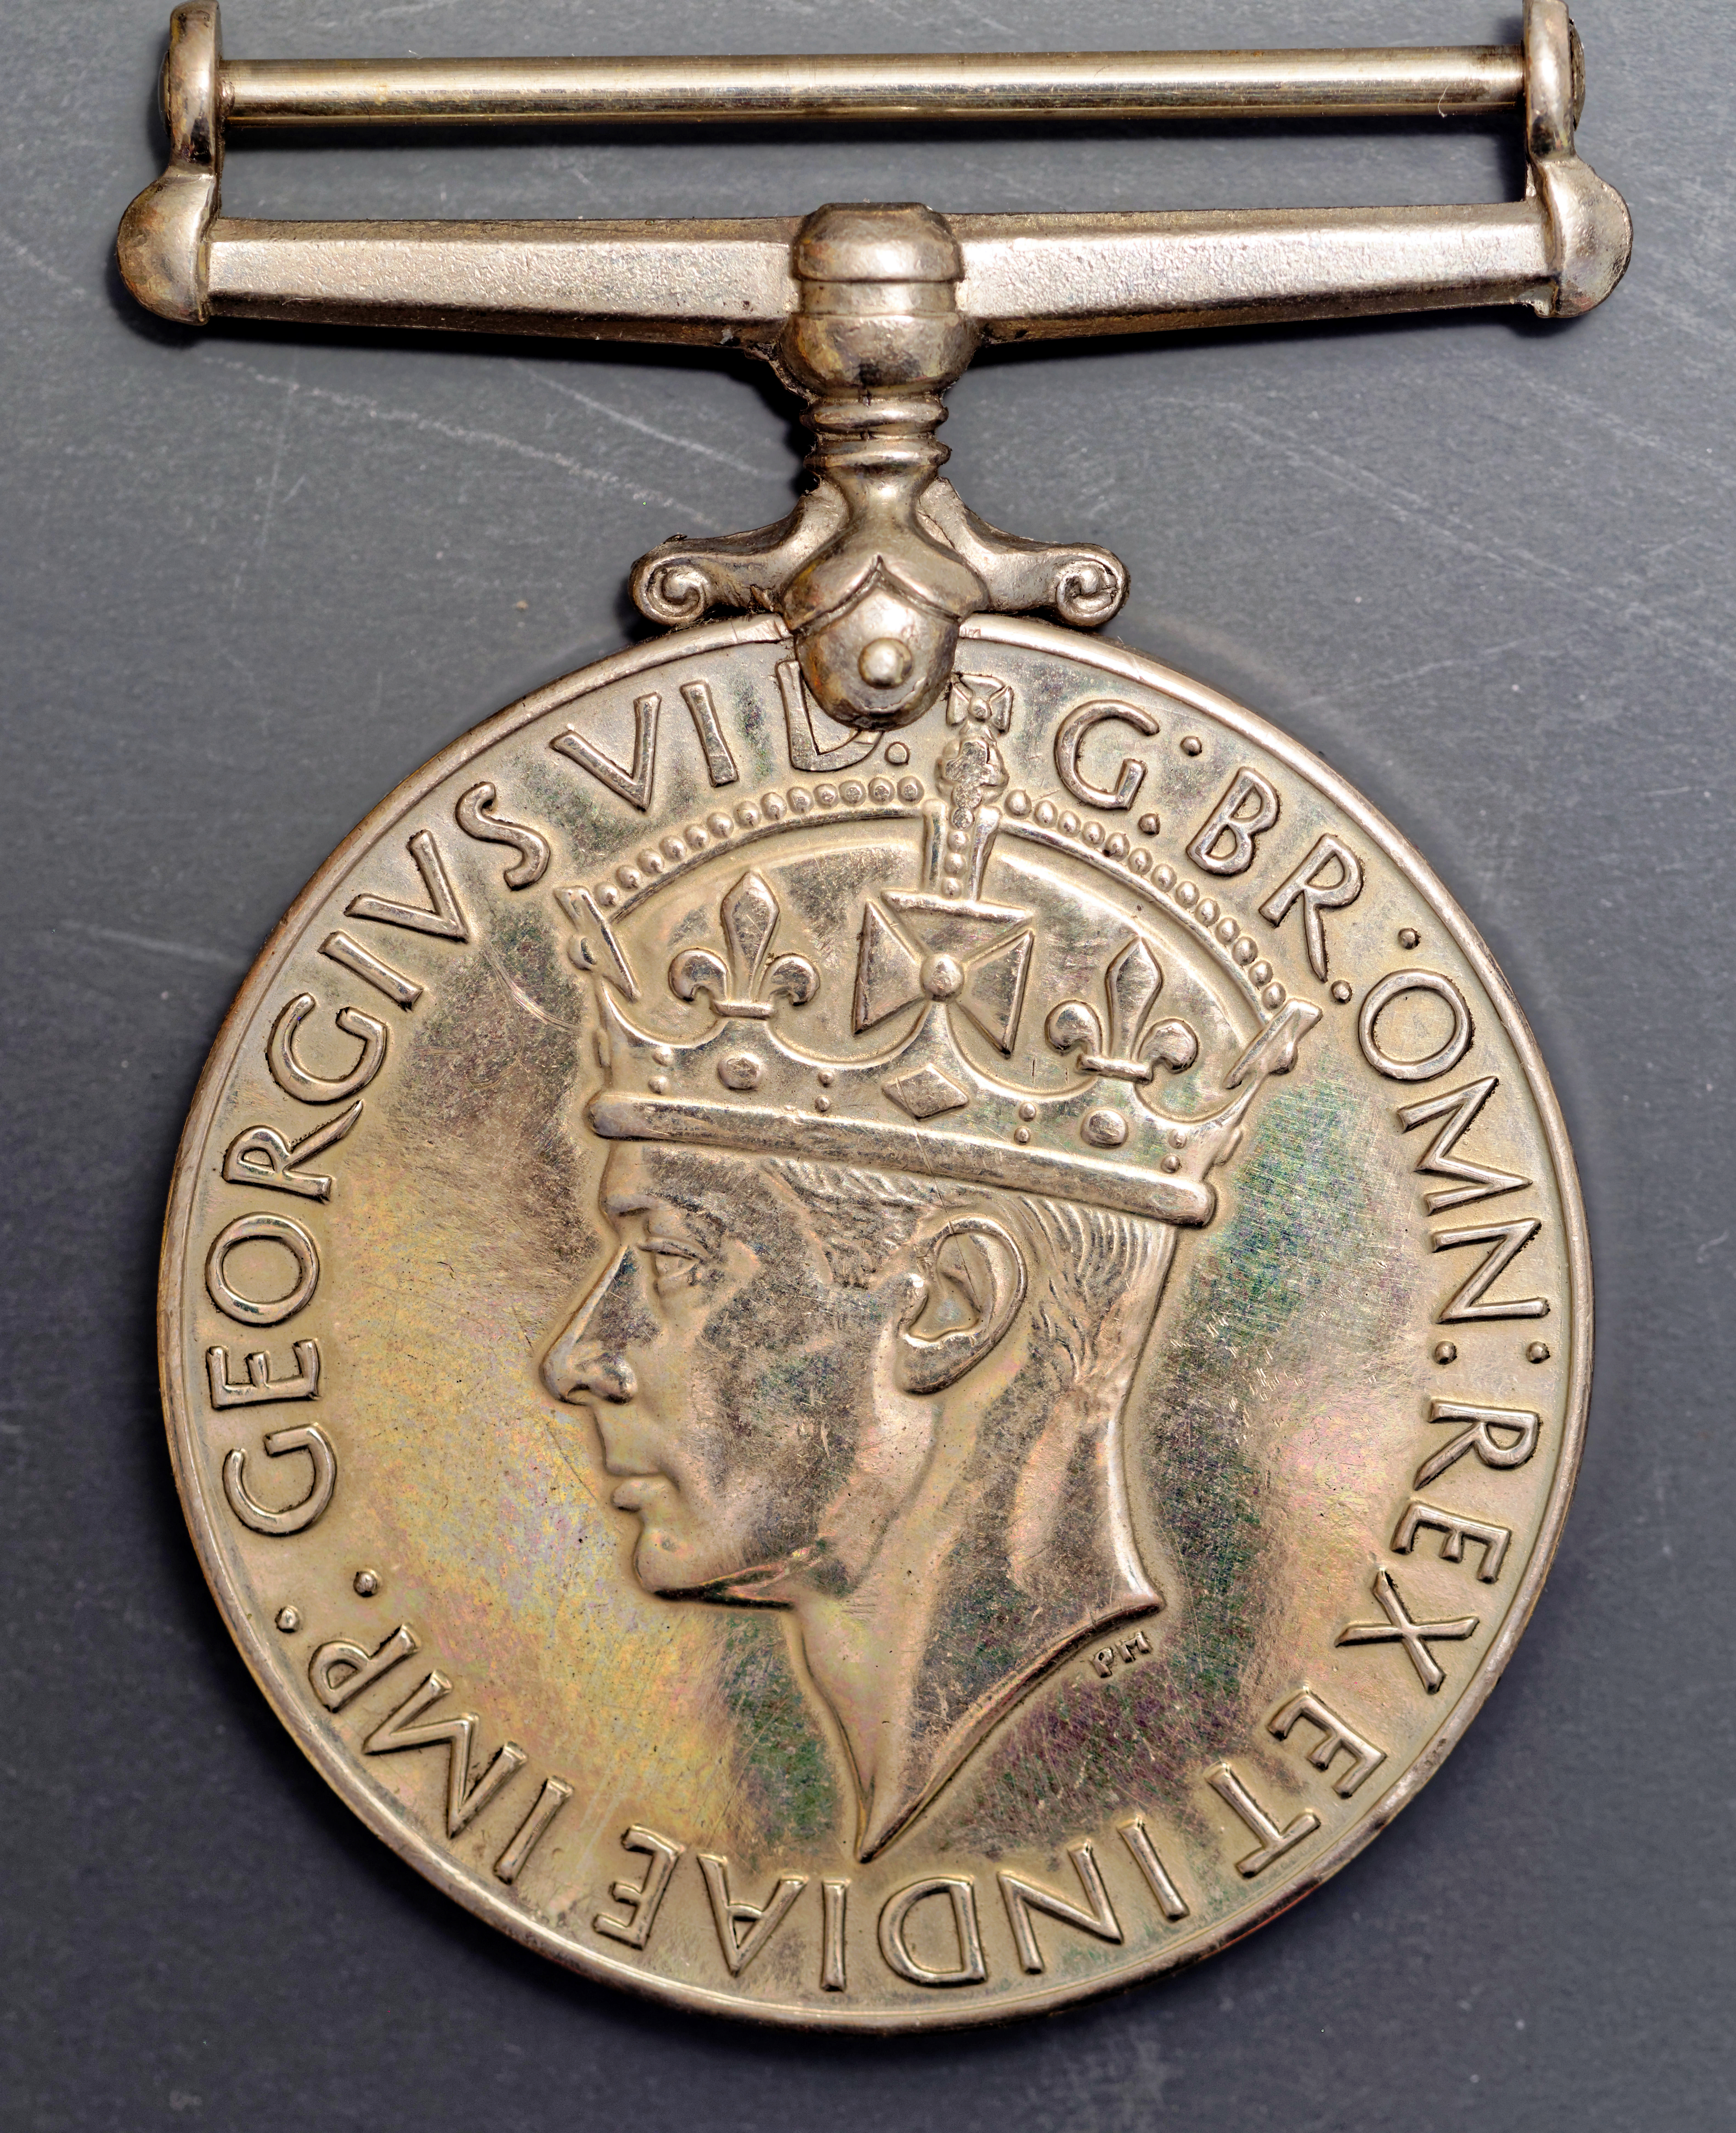 This should be British-service-medal-reverse.jpeg.  Is it missing?